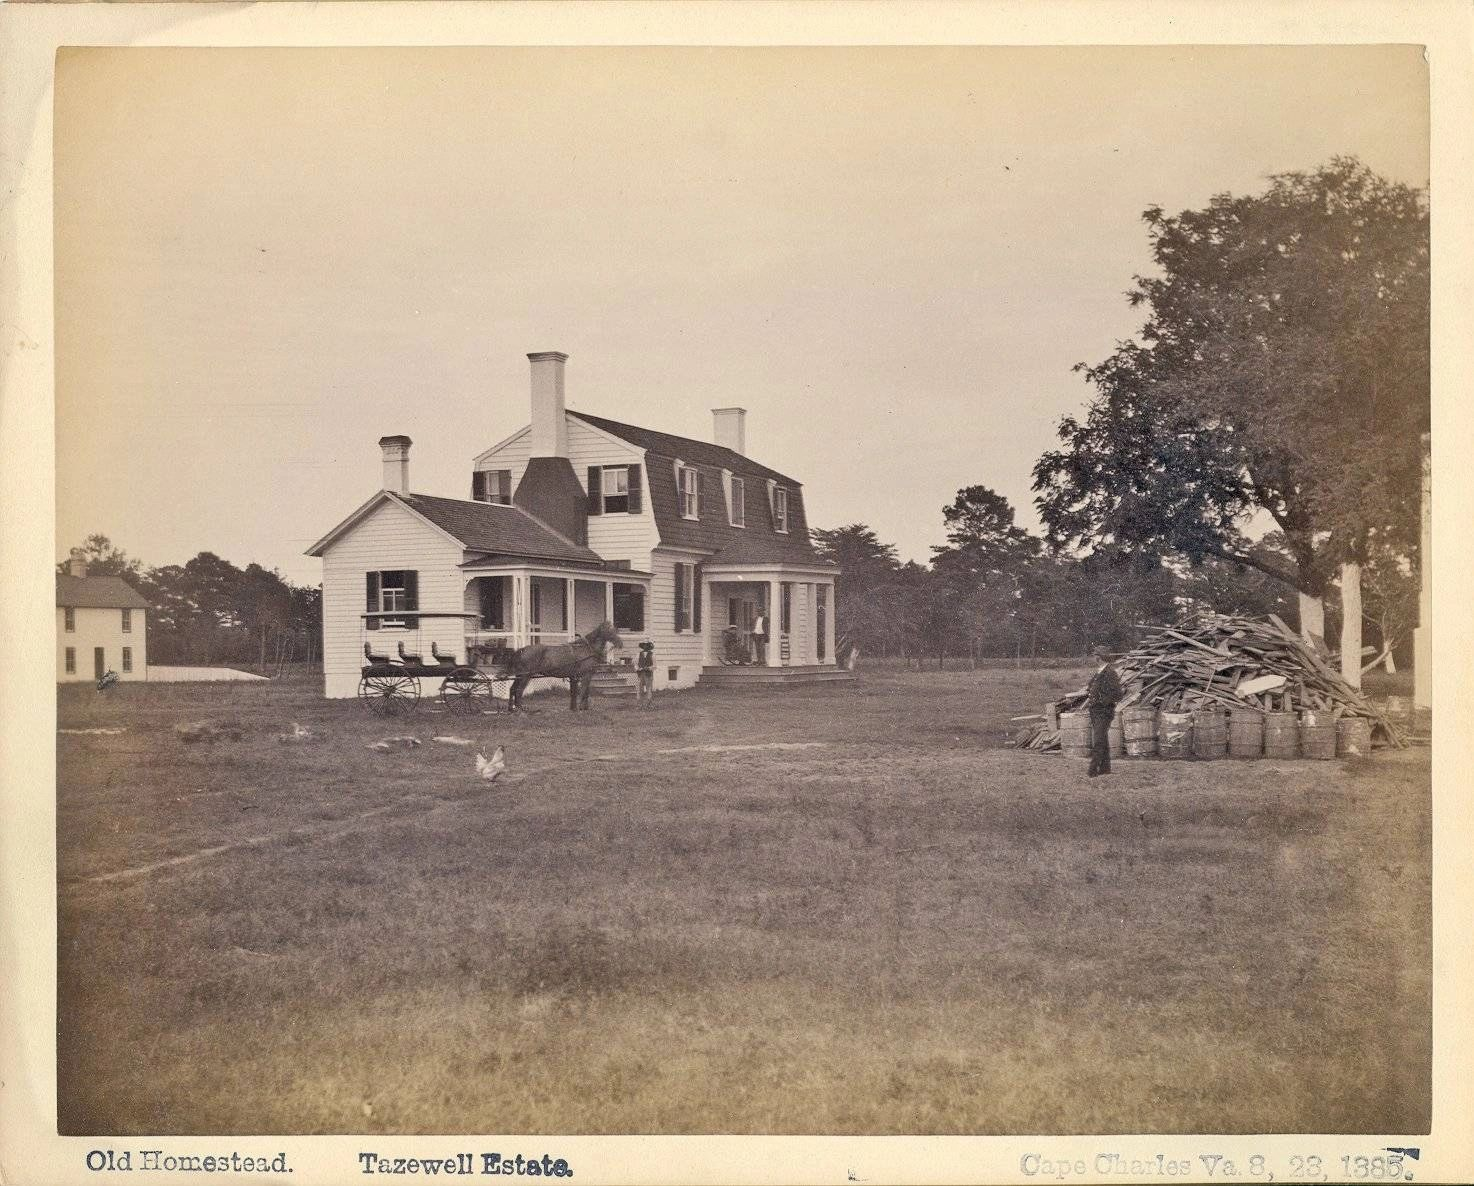 Littleton Tazewell Estate , bought by William L. Scott. Wm. Scott Estate Cape Charles blog.